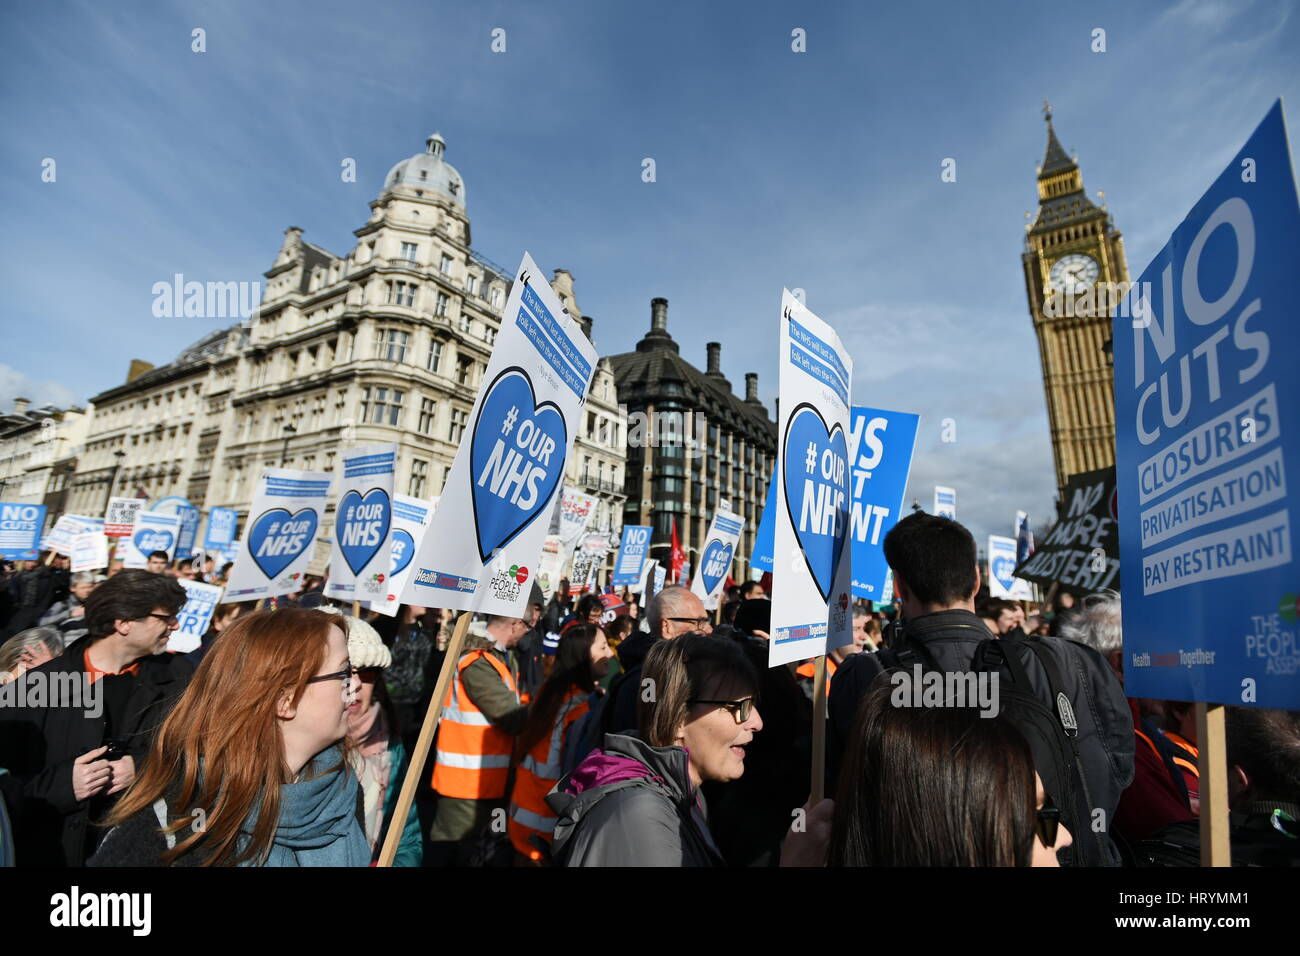 London, UK.  4th Mar, 2017. Protesters march past Parliament during a demonstration in support of the NHS. Thousands - Stock Image